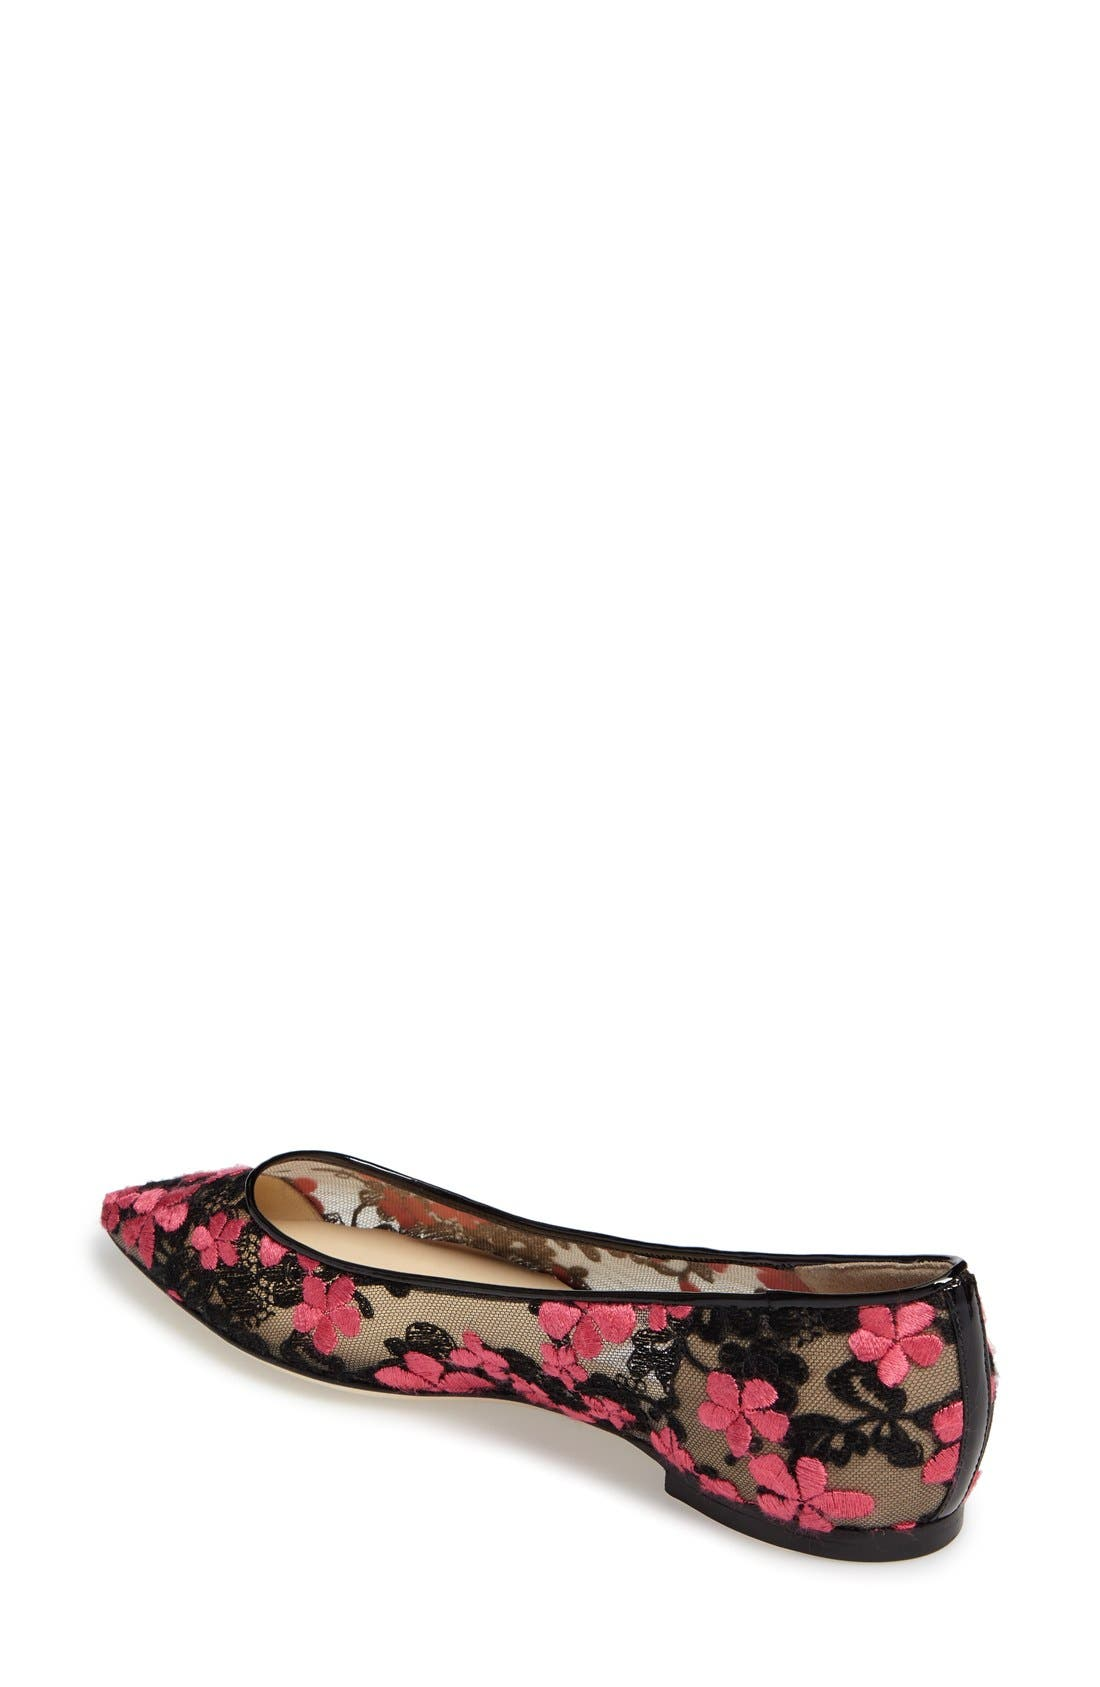 Alternate Image 2  - Jimmy Choo Romy Embroidered Floral Flat (Women)